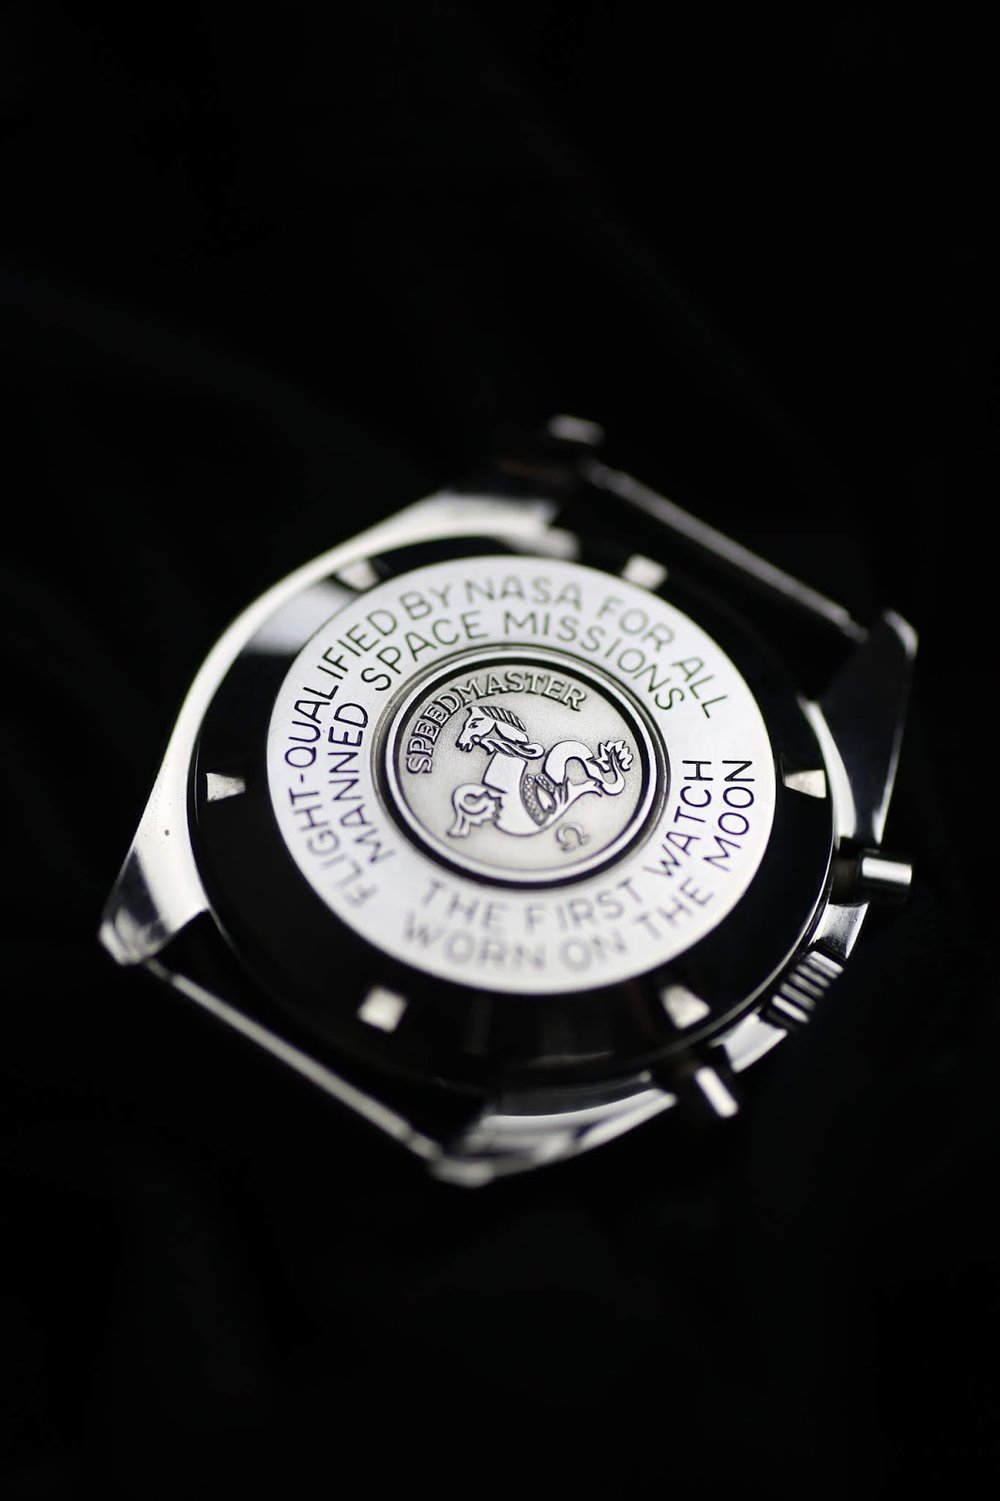 CasebackOmega Speedmaster 3590.50 Watch Vault Face.JPG